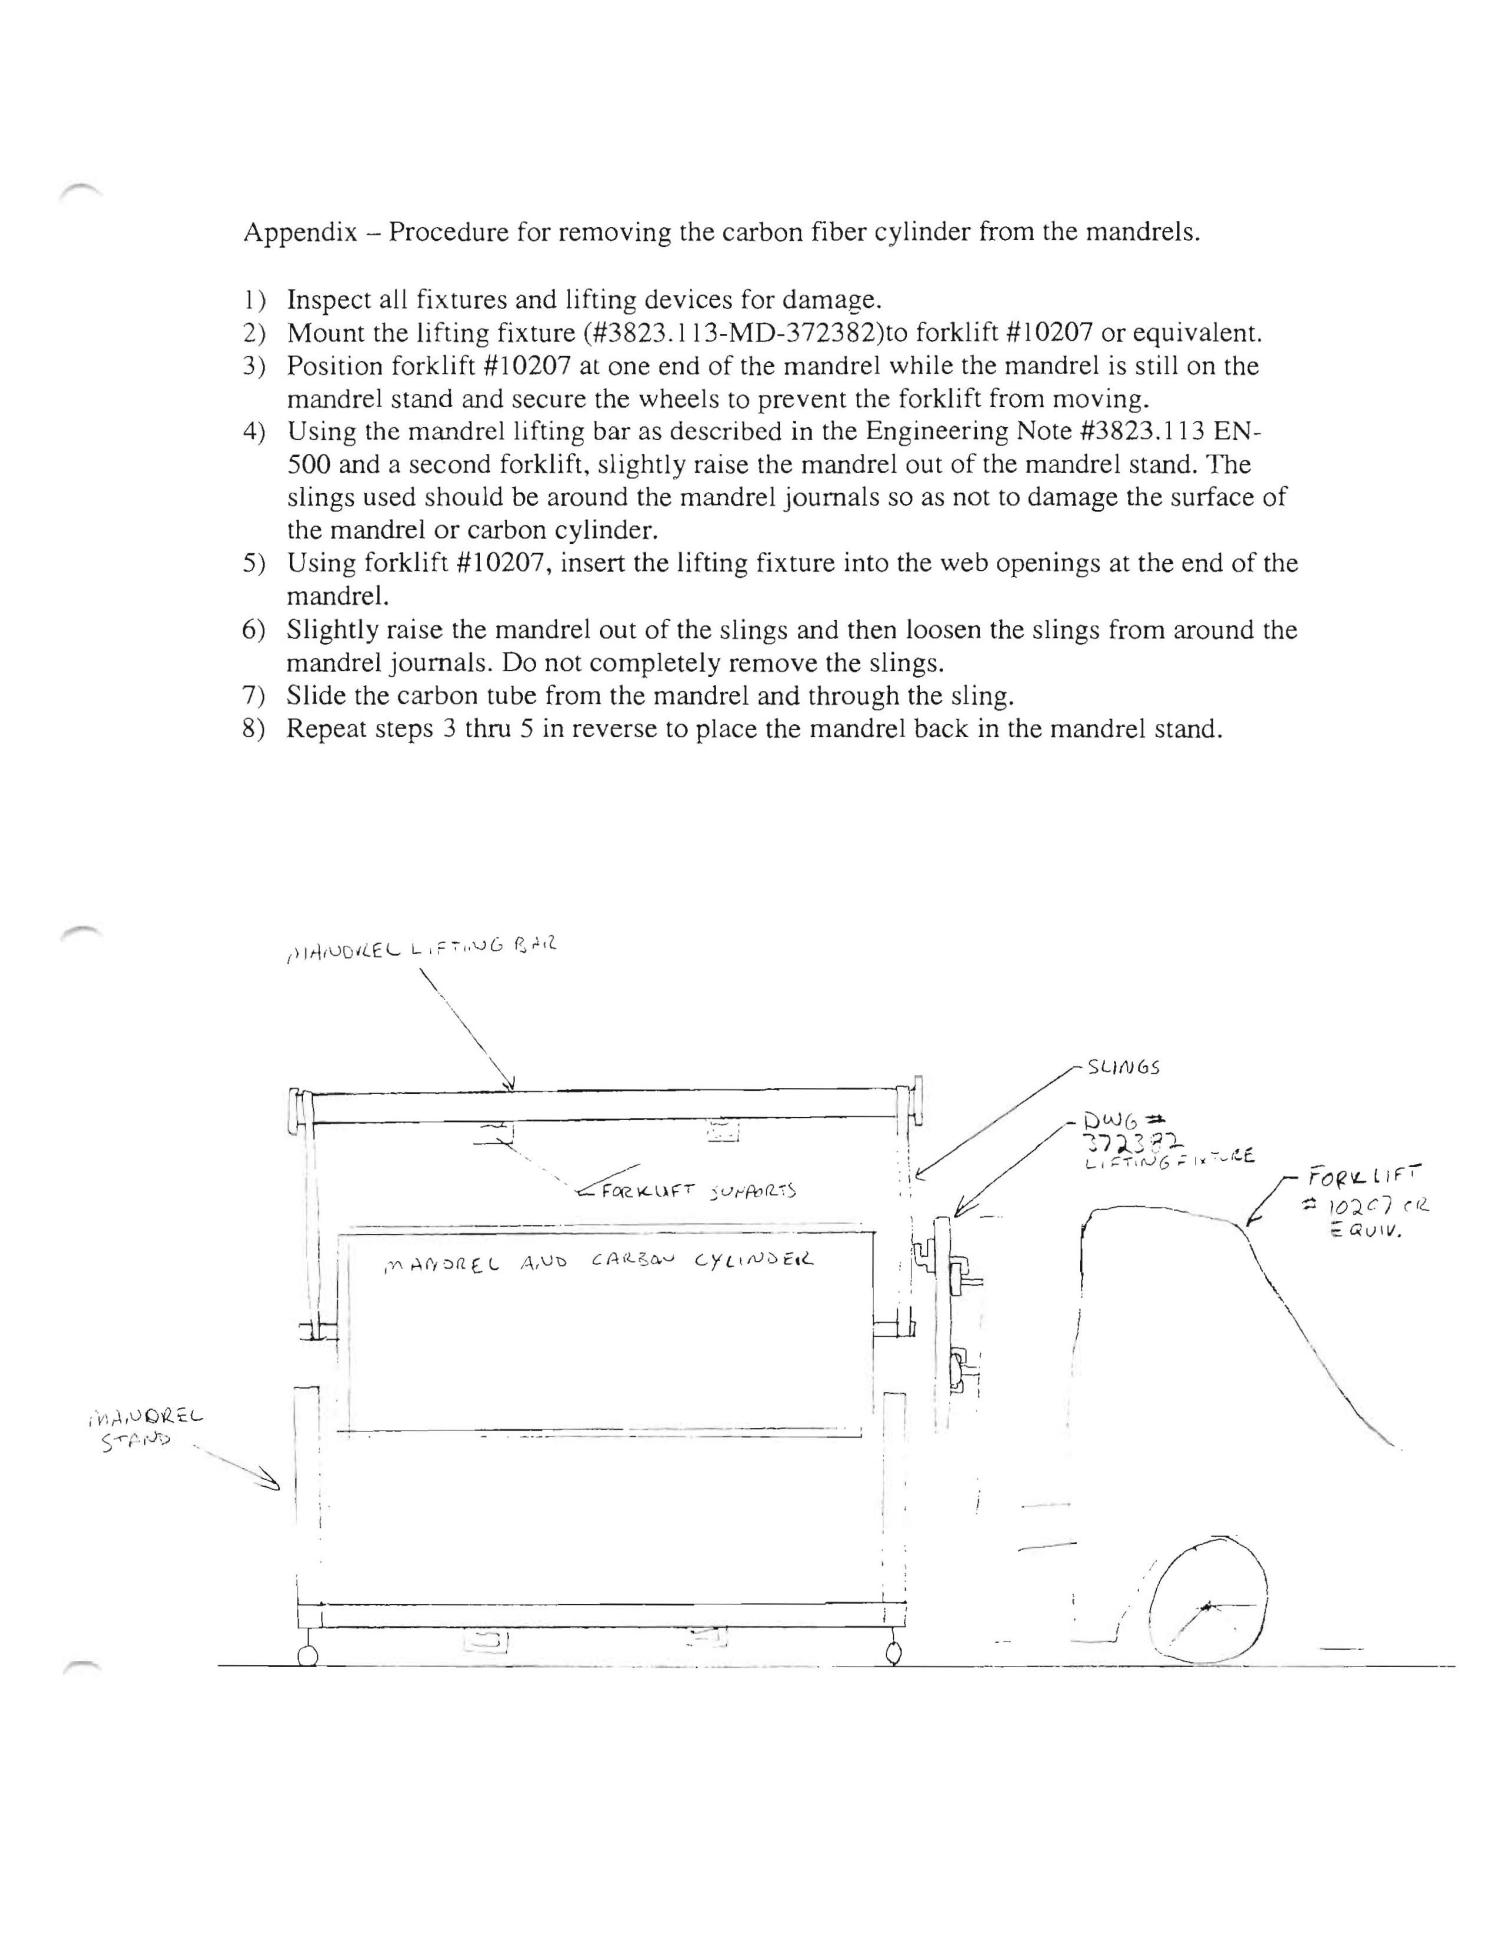 Analysis of a Lifting Fixture to Hold a Steel Mandrel Horizontally from one End Support                                                                                                      [Sequence #]: 6 of 17